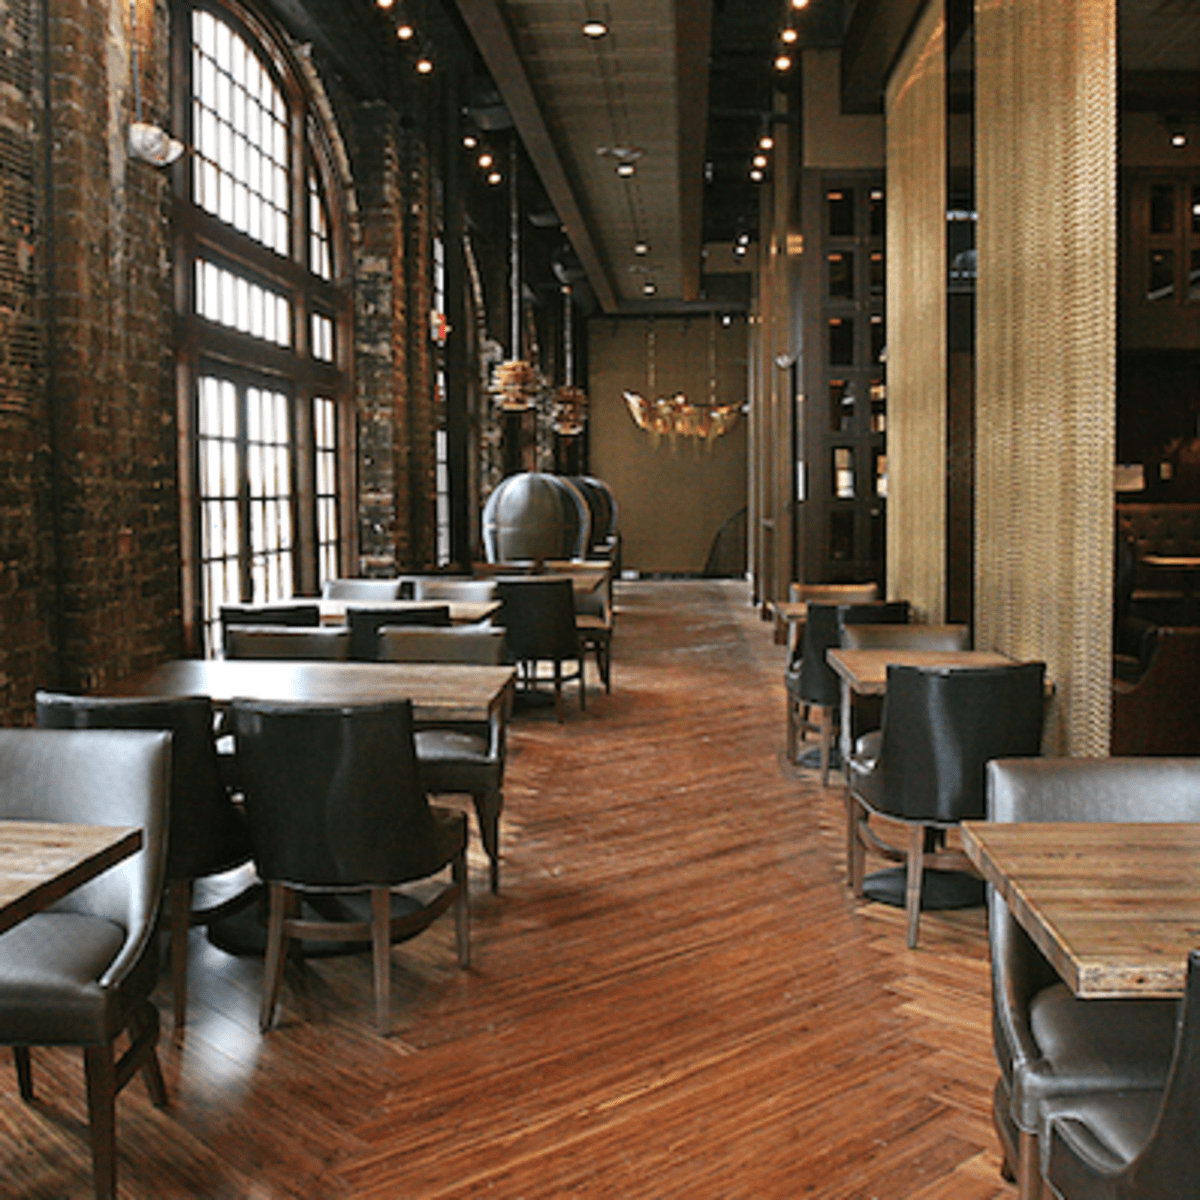 Houston, Lawless Kitchen and Bar, August 2015, interior